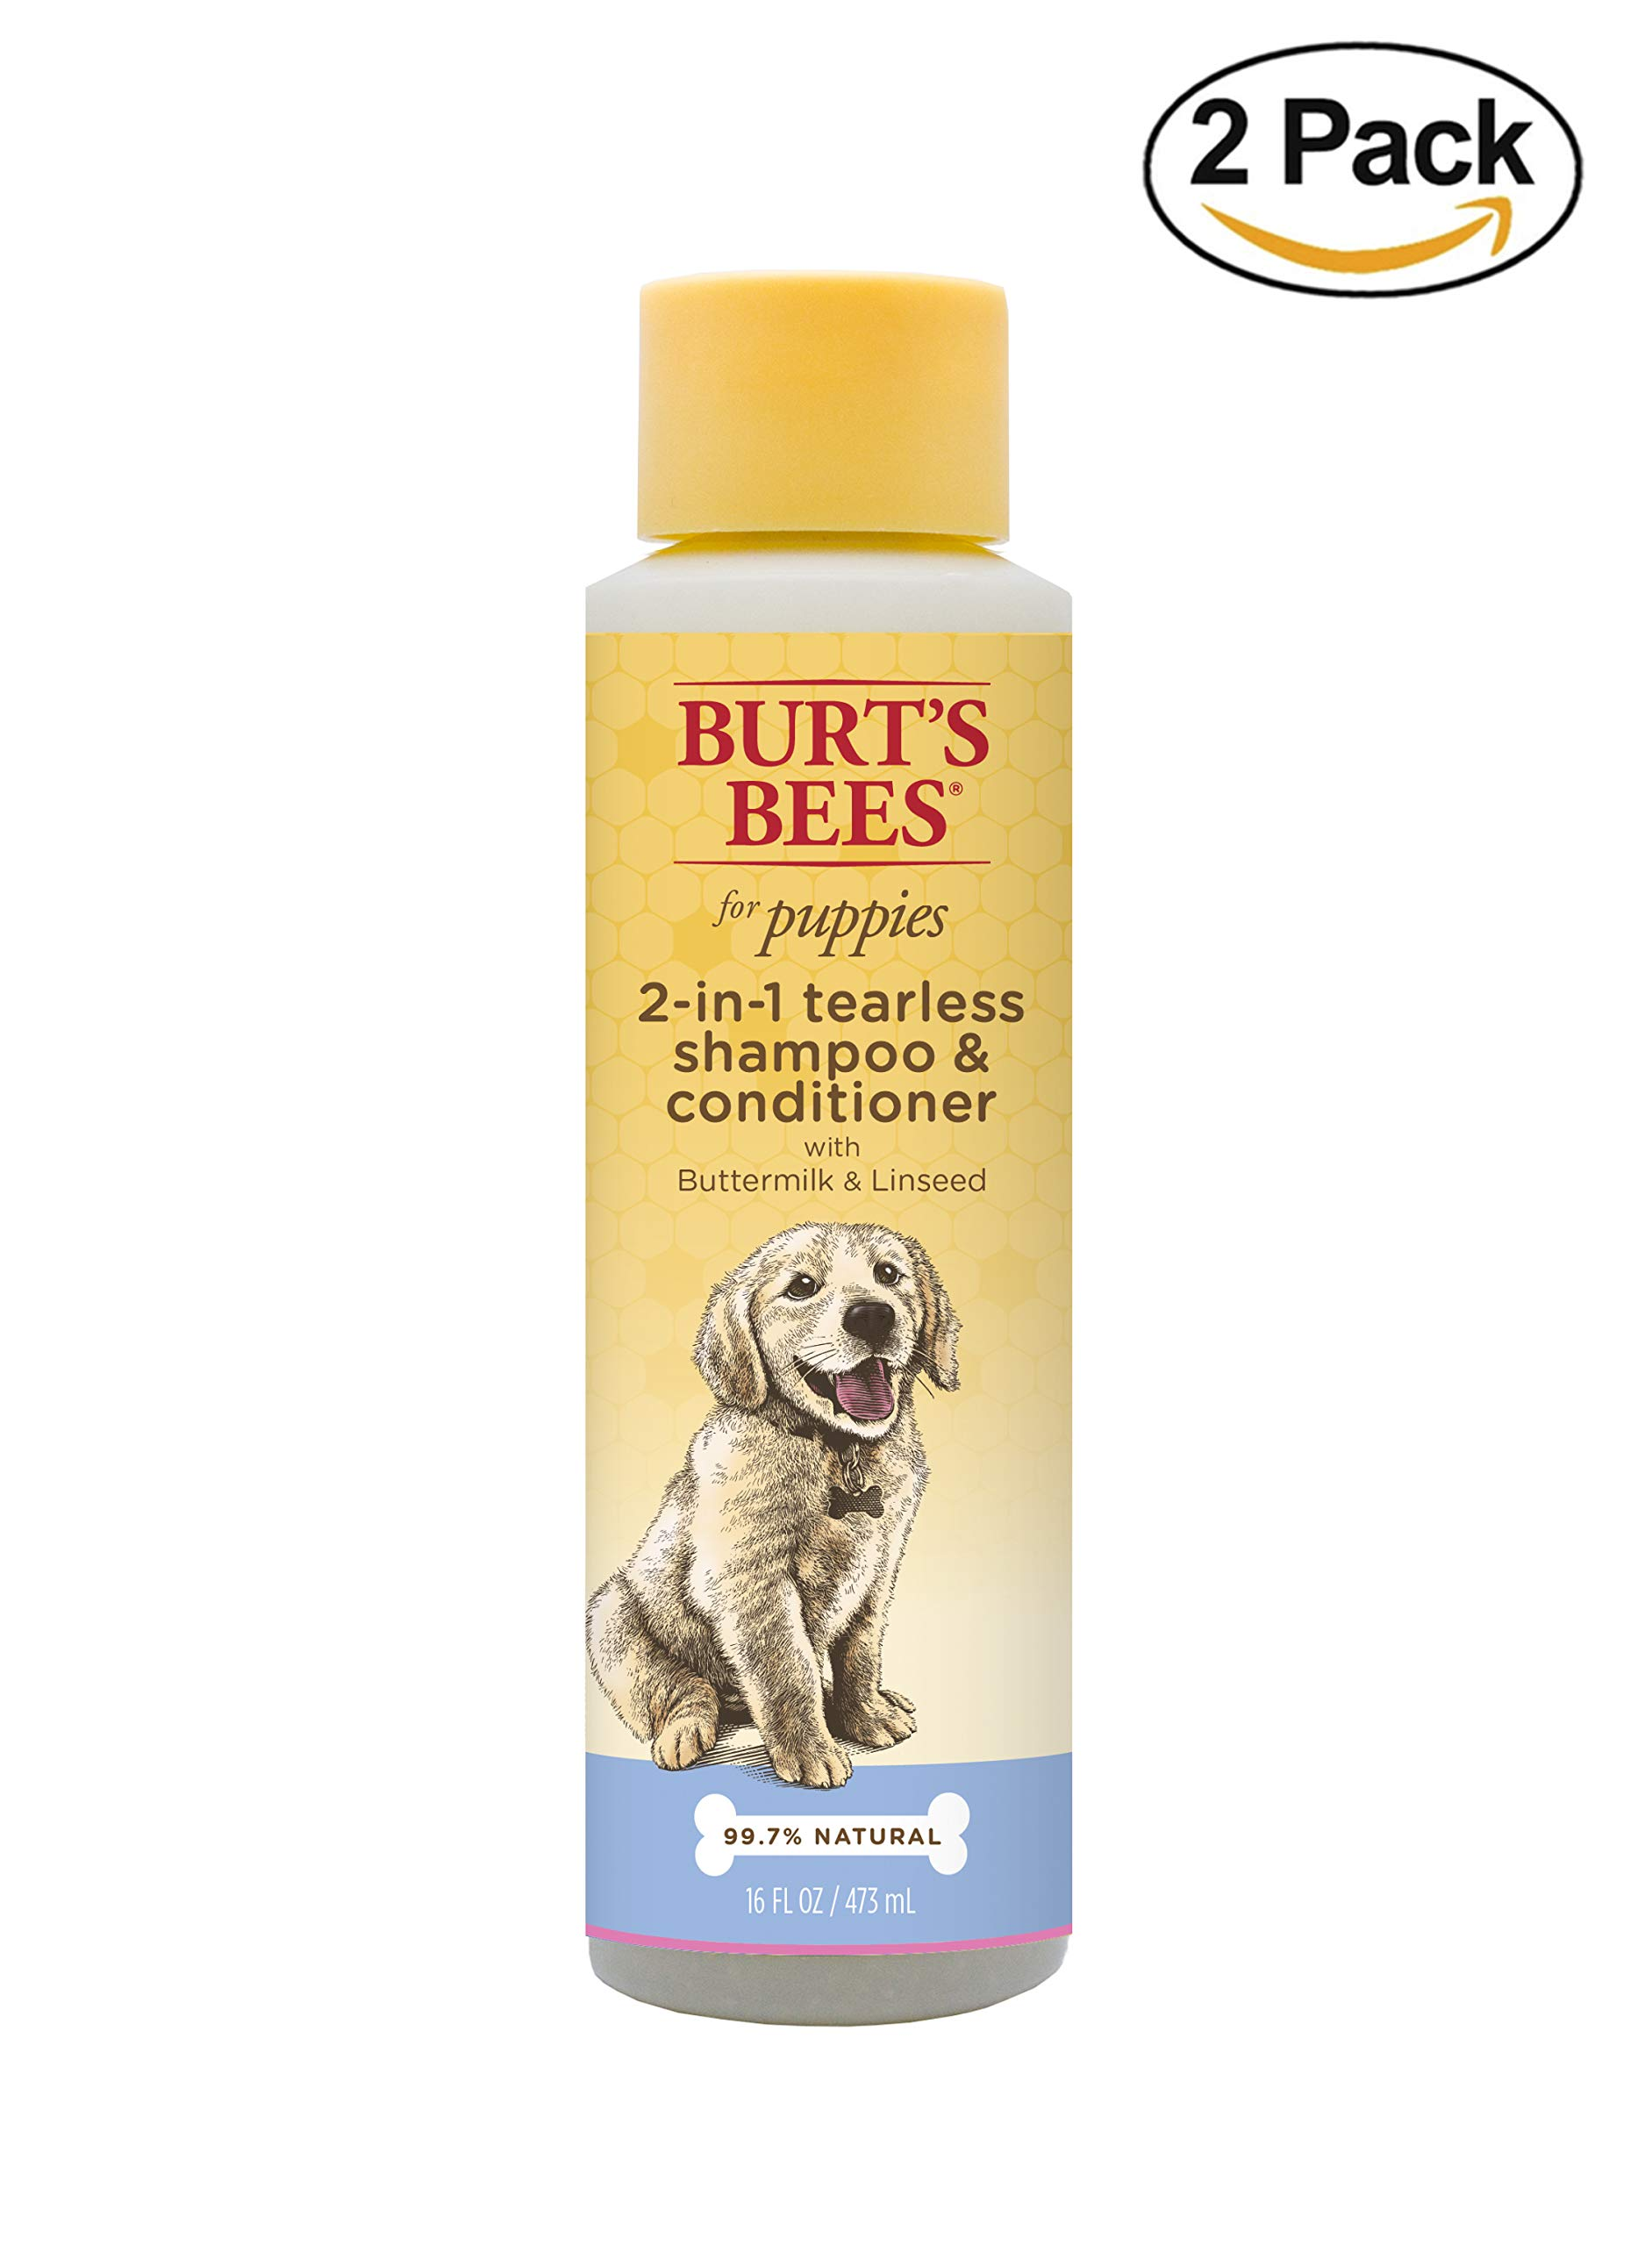 Burt's Bees for Dogs All-Natural Tearless 2 In 1 Shampoo & Conditioner | Best Shampoo & Conditioner for All Dogs & Puppies, Pack of 2